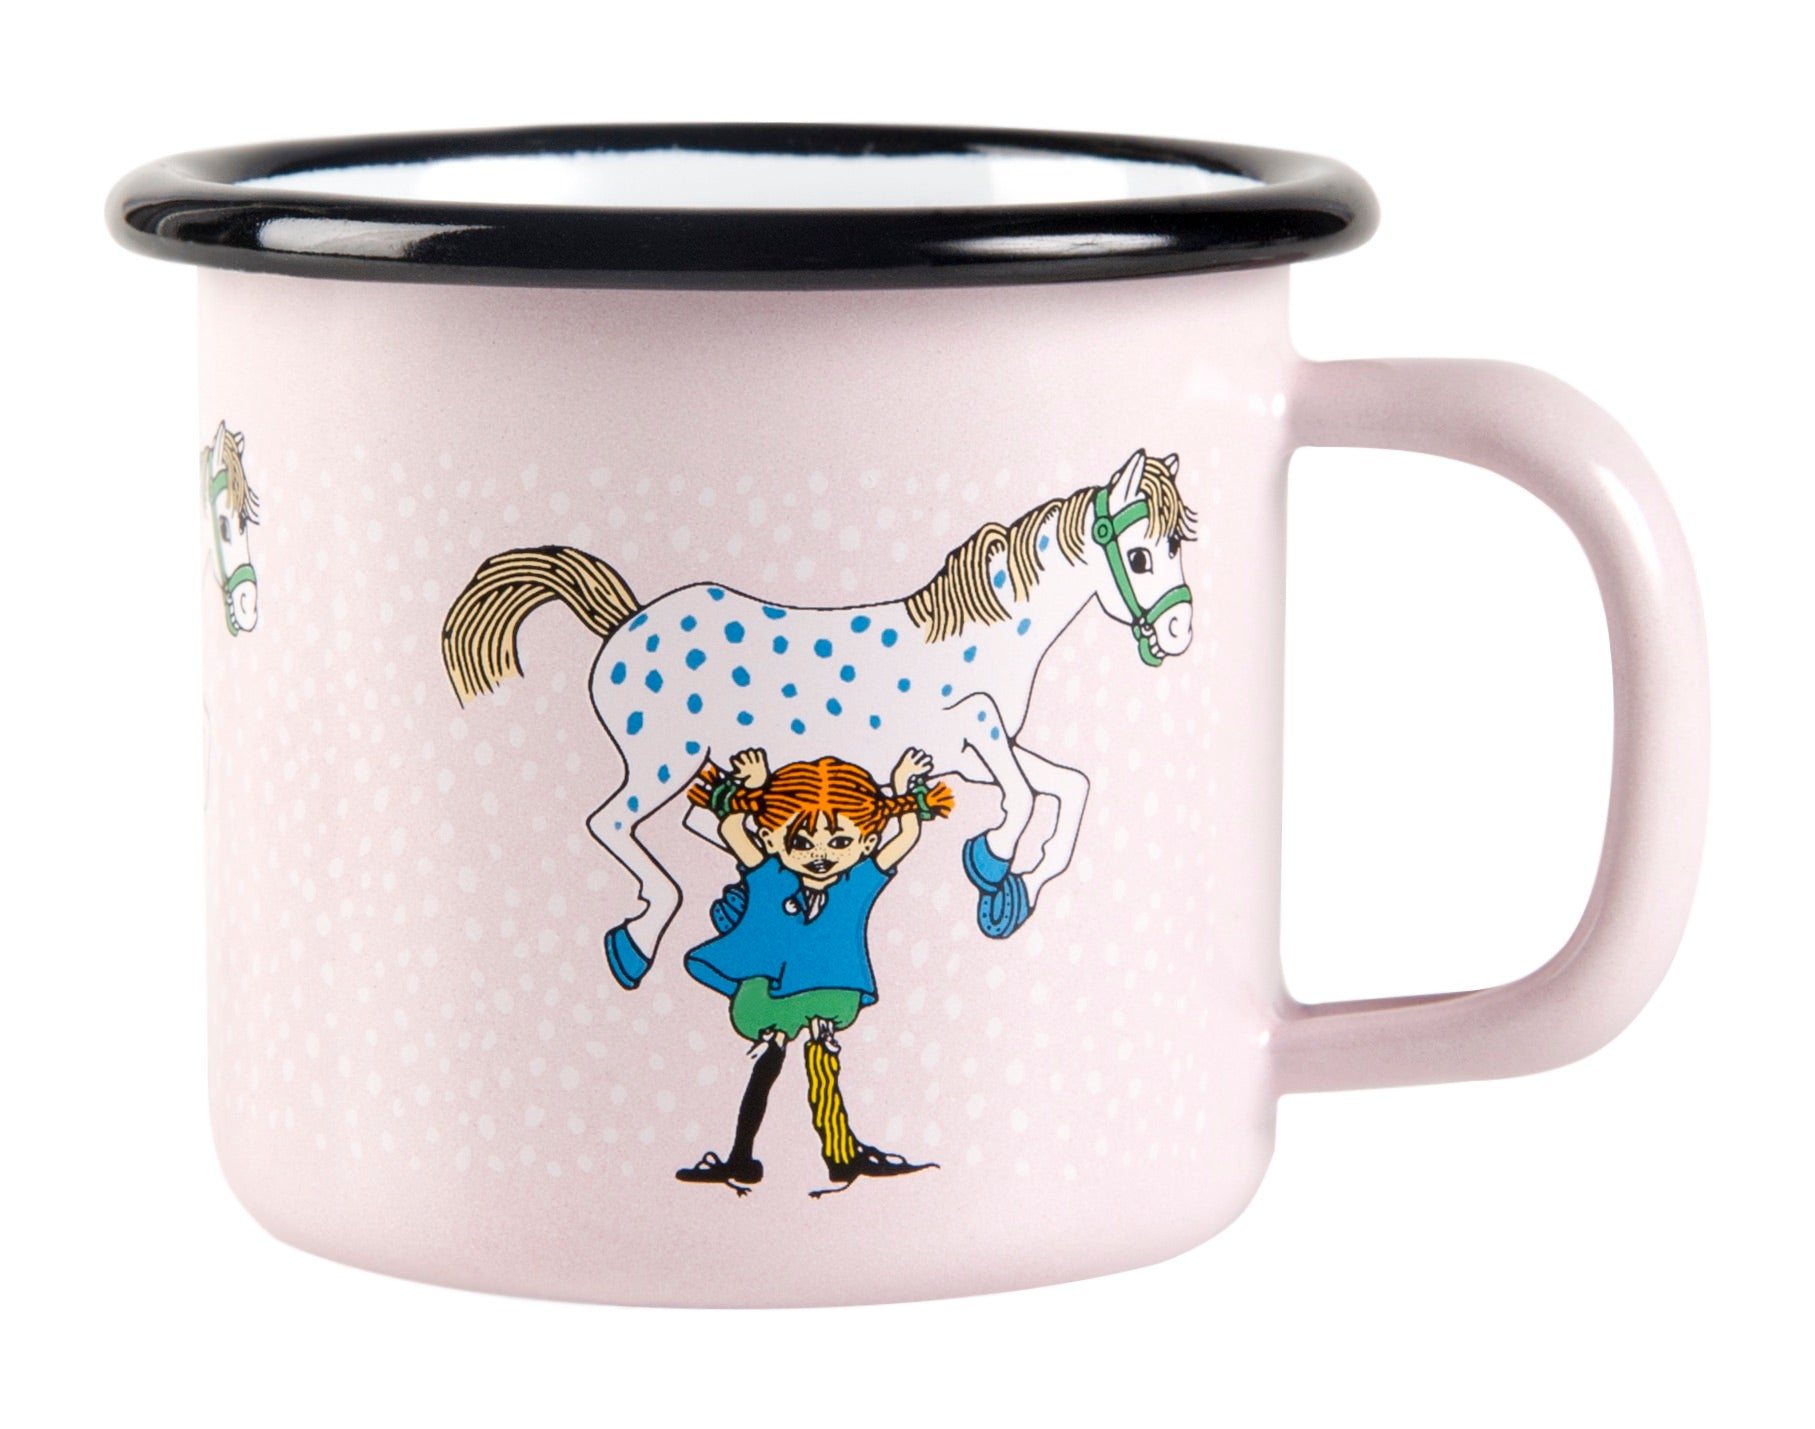 MUURL Pippi Långstrump 'Pippi and the Horse' Enamel Cup Toddler Size 1.5dl